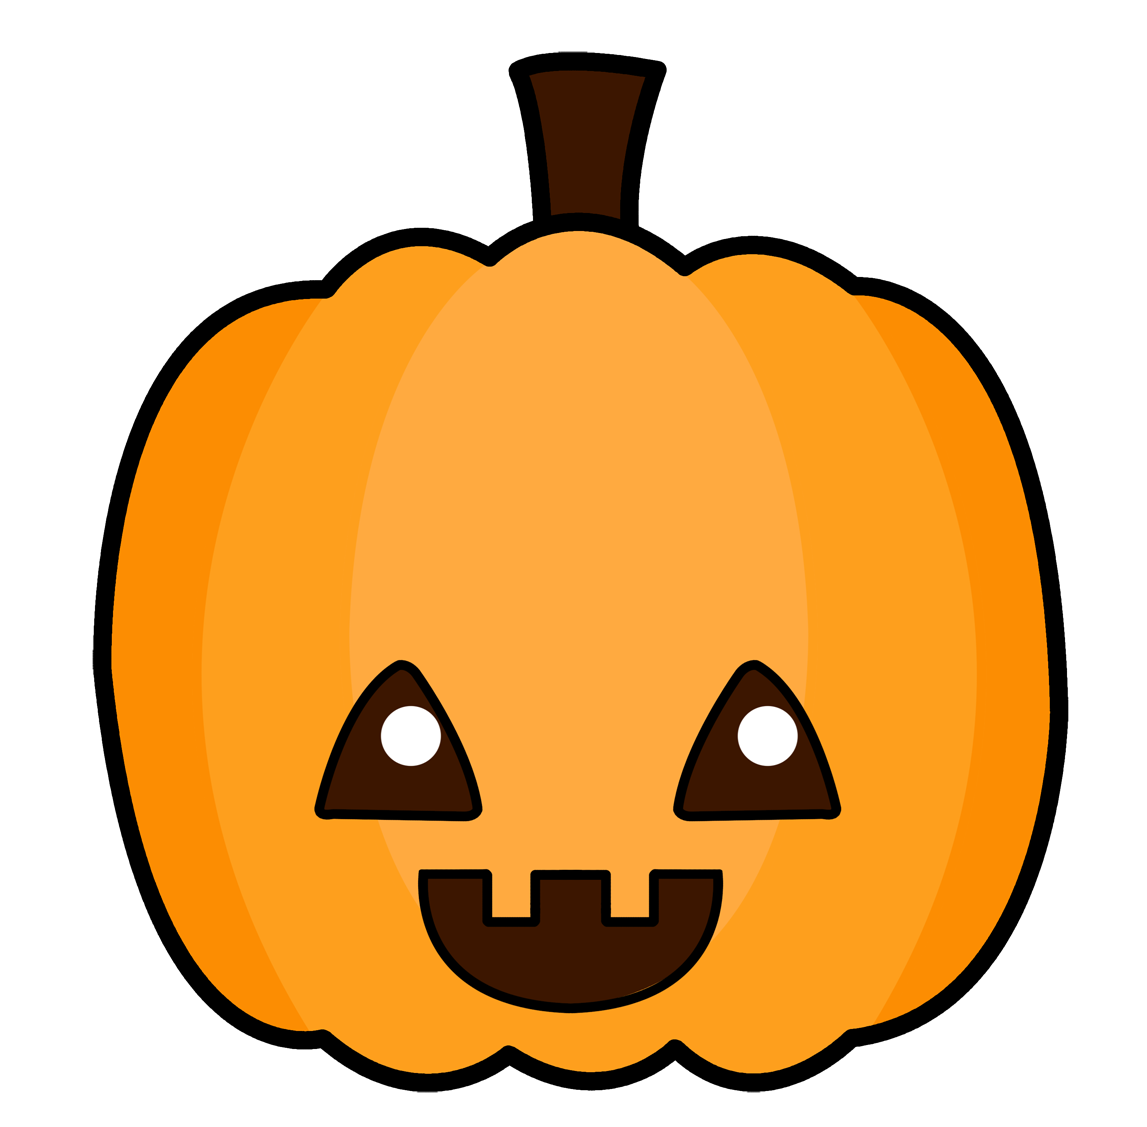 jack o lantern faces clip art - photo #46